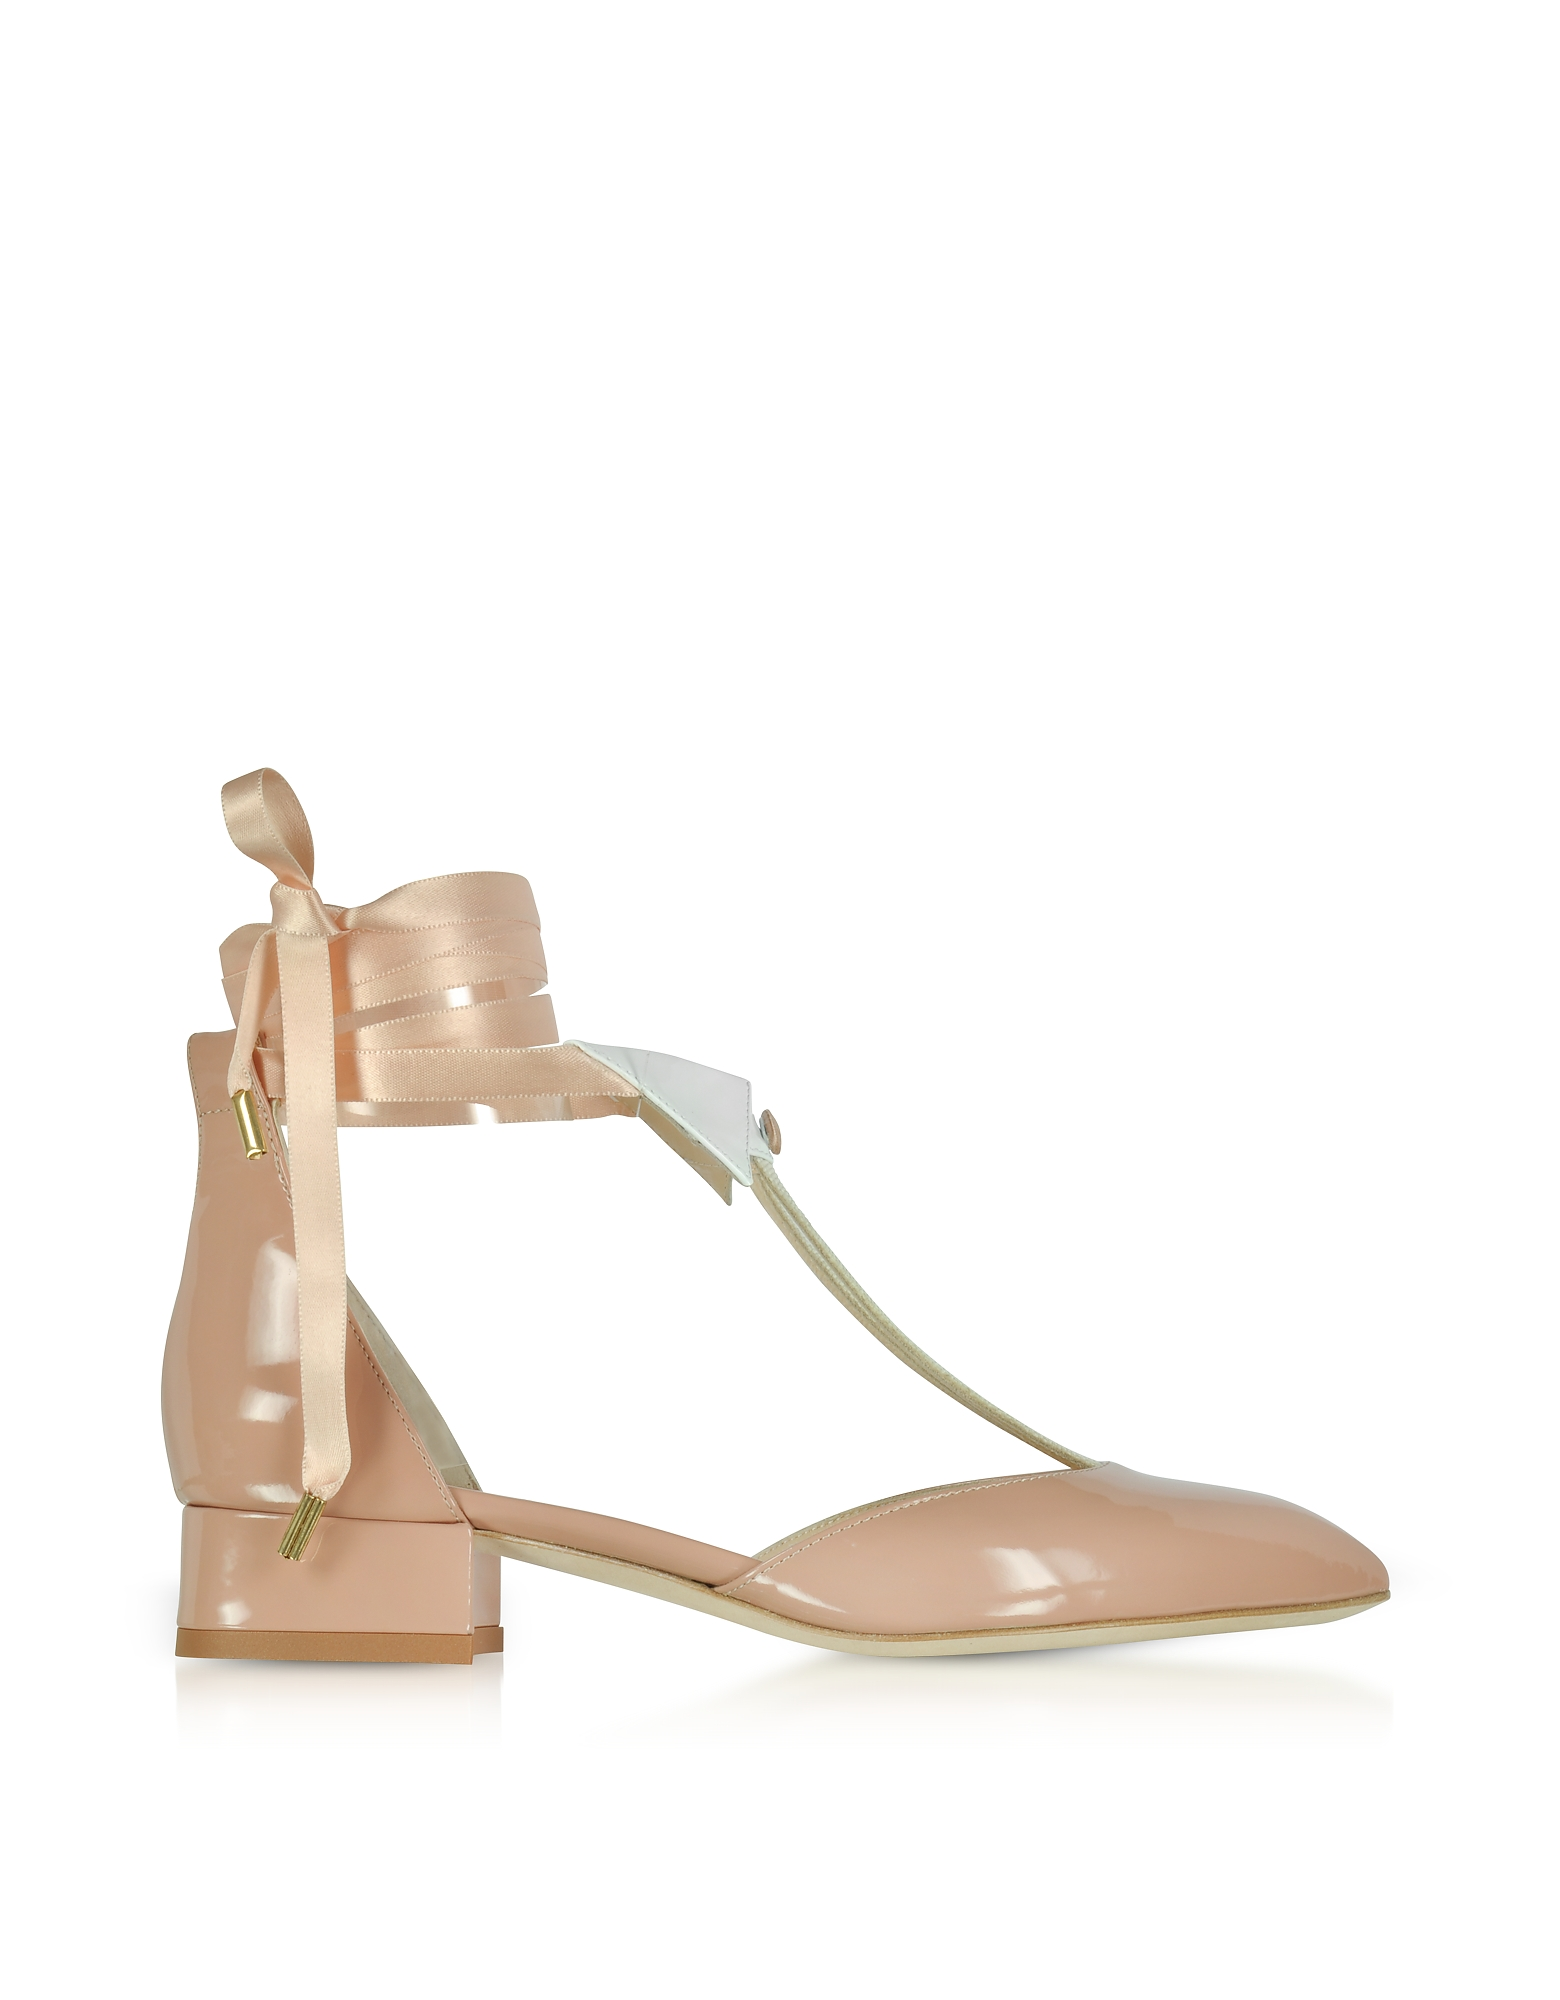 OLGANA PARIS L'IDEAL NUDE PATENT LEATHER MID-HEEL PUMP